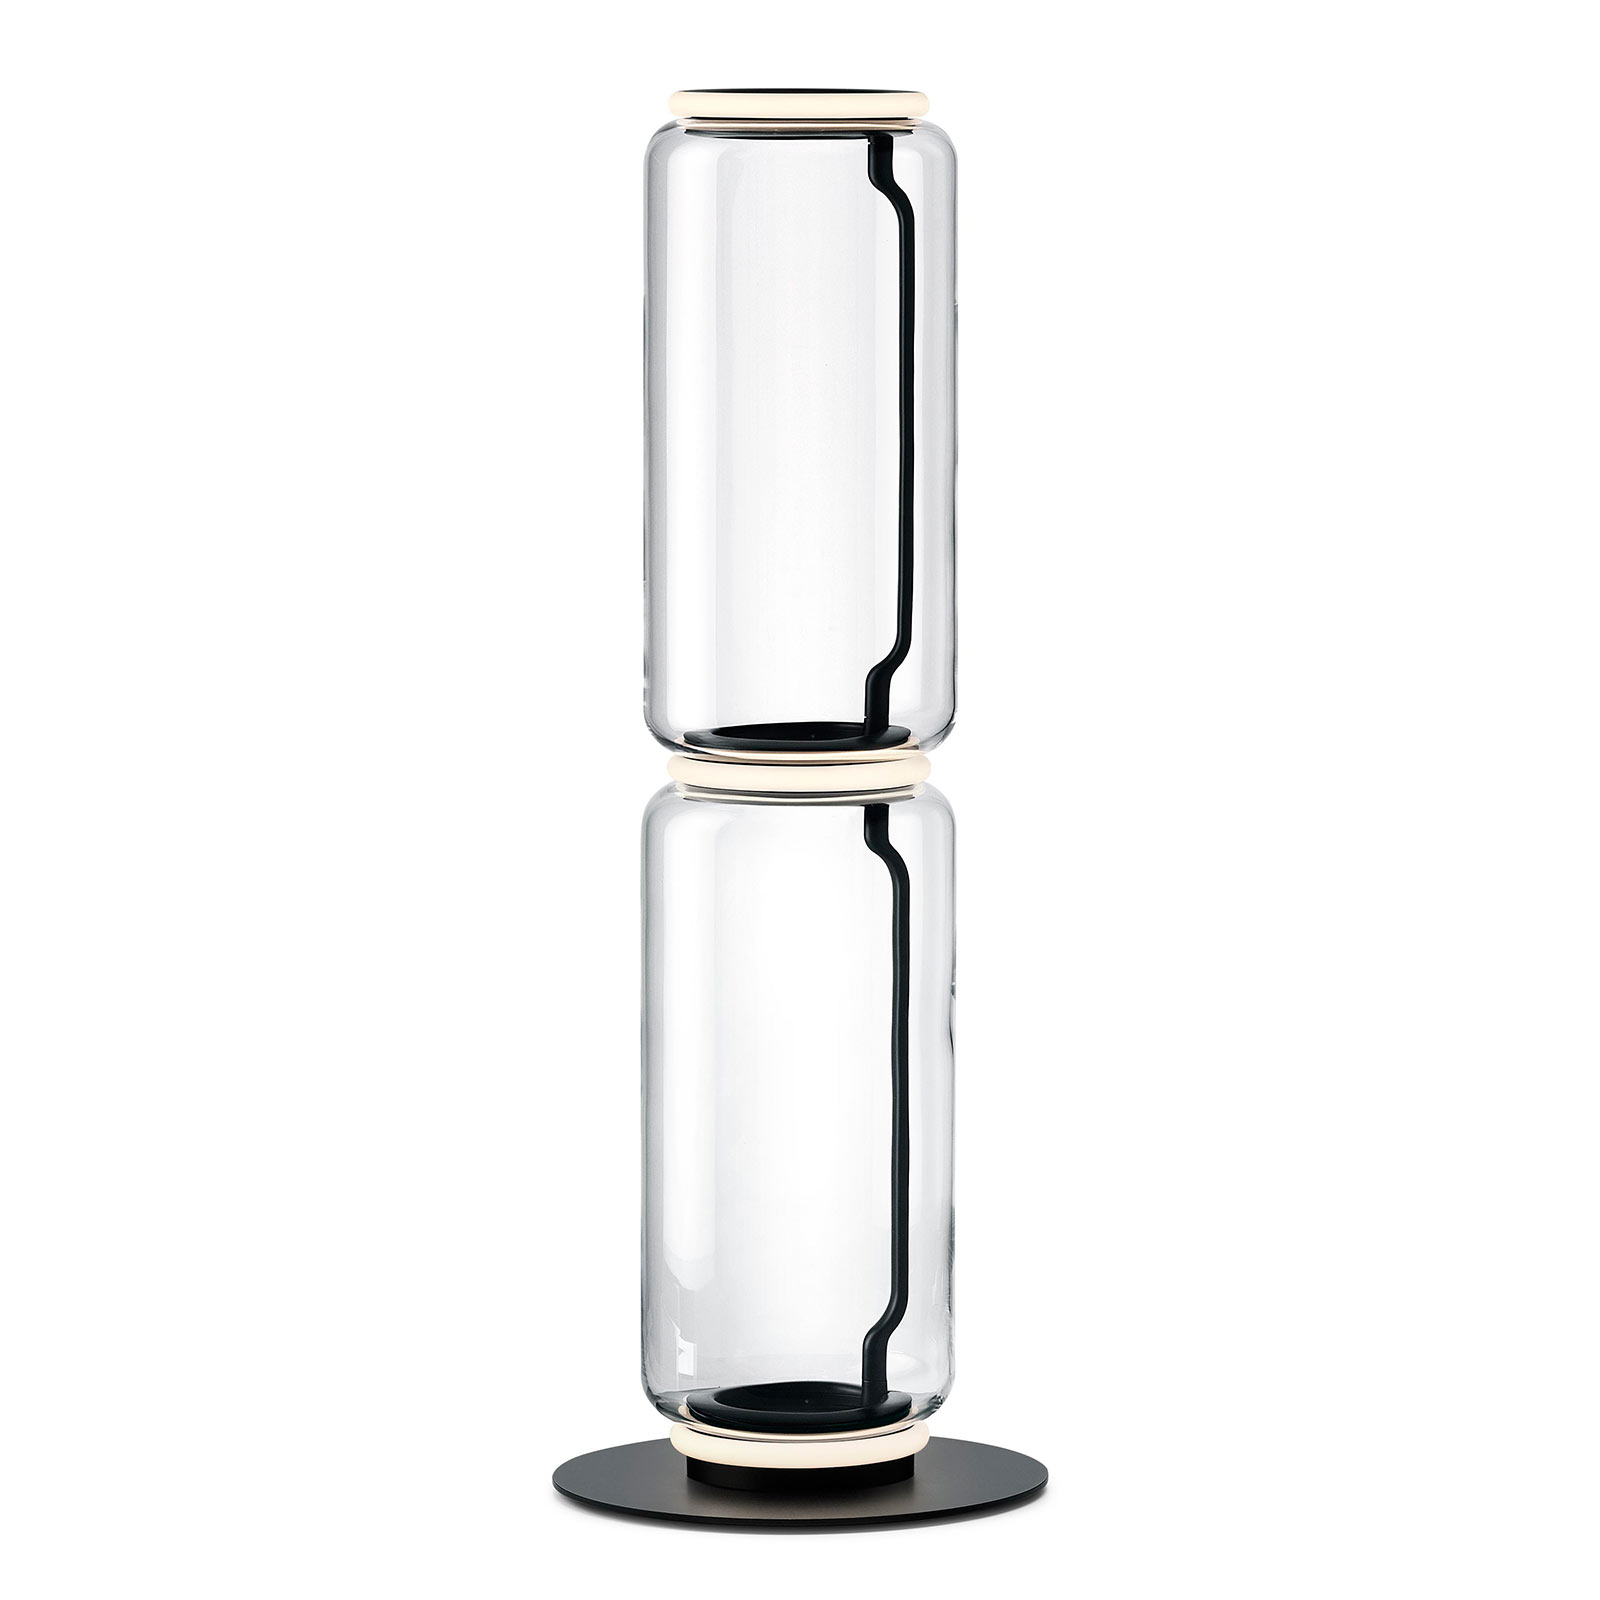 FLOS Noctambule 2 High Cylinders, small base